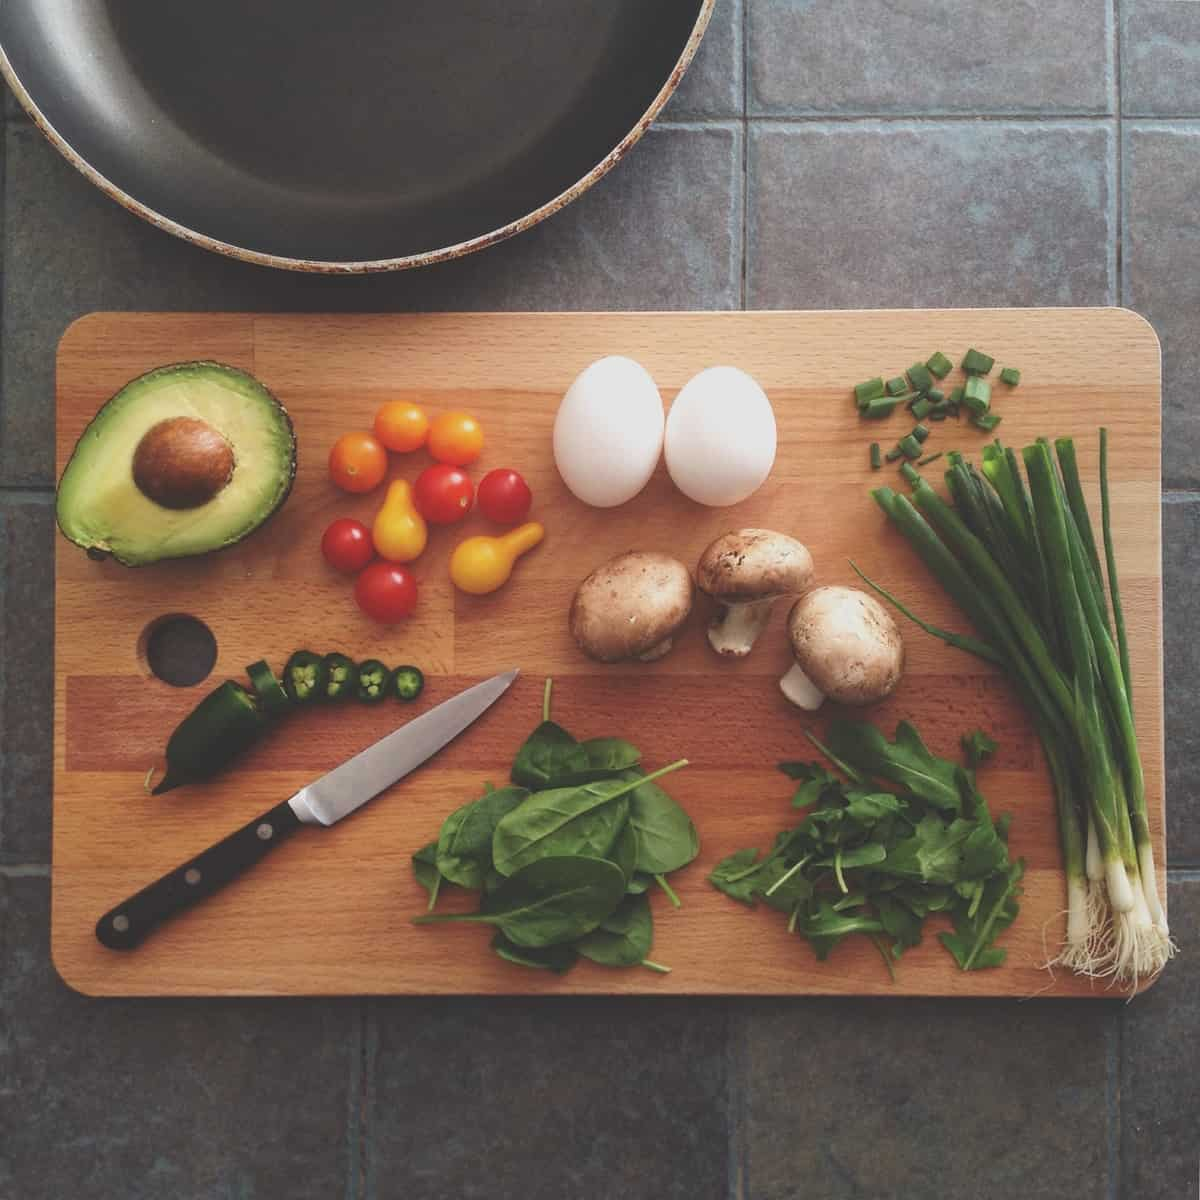 Three Reasons to Keep More Than One Chopping Board In Your Kitchen